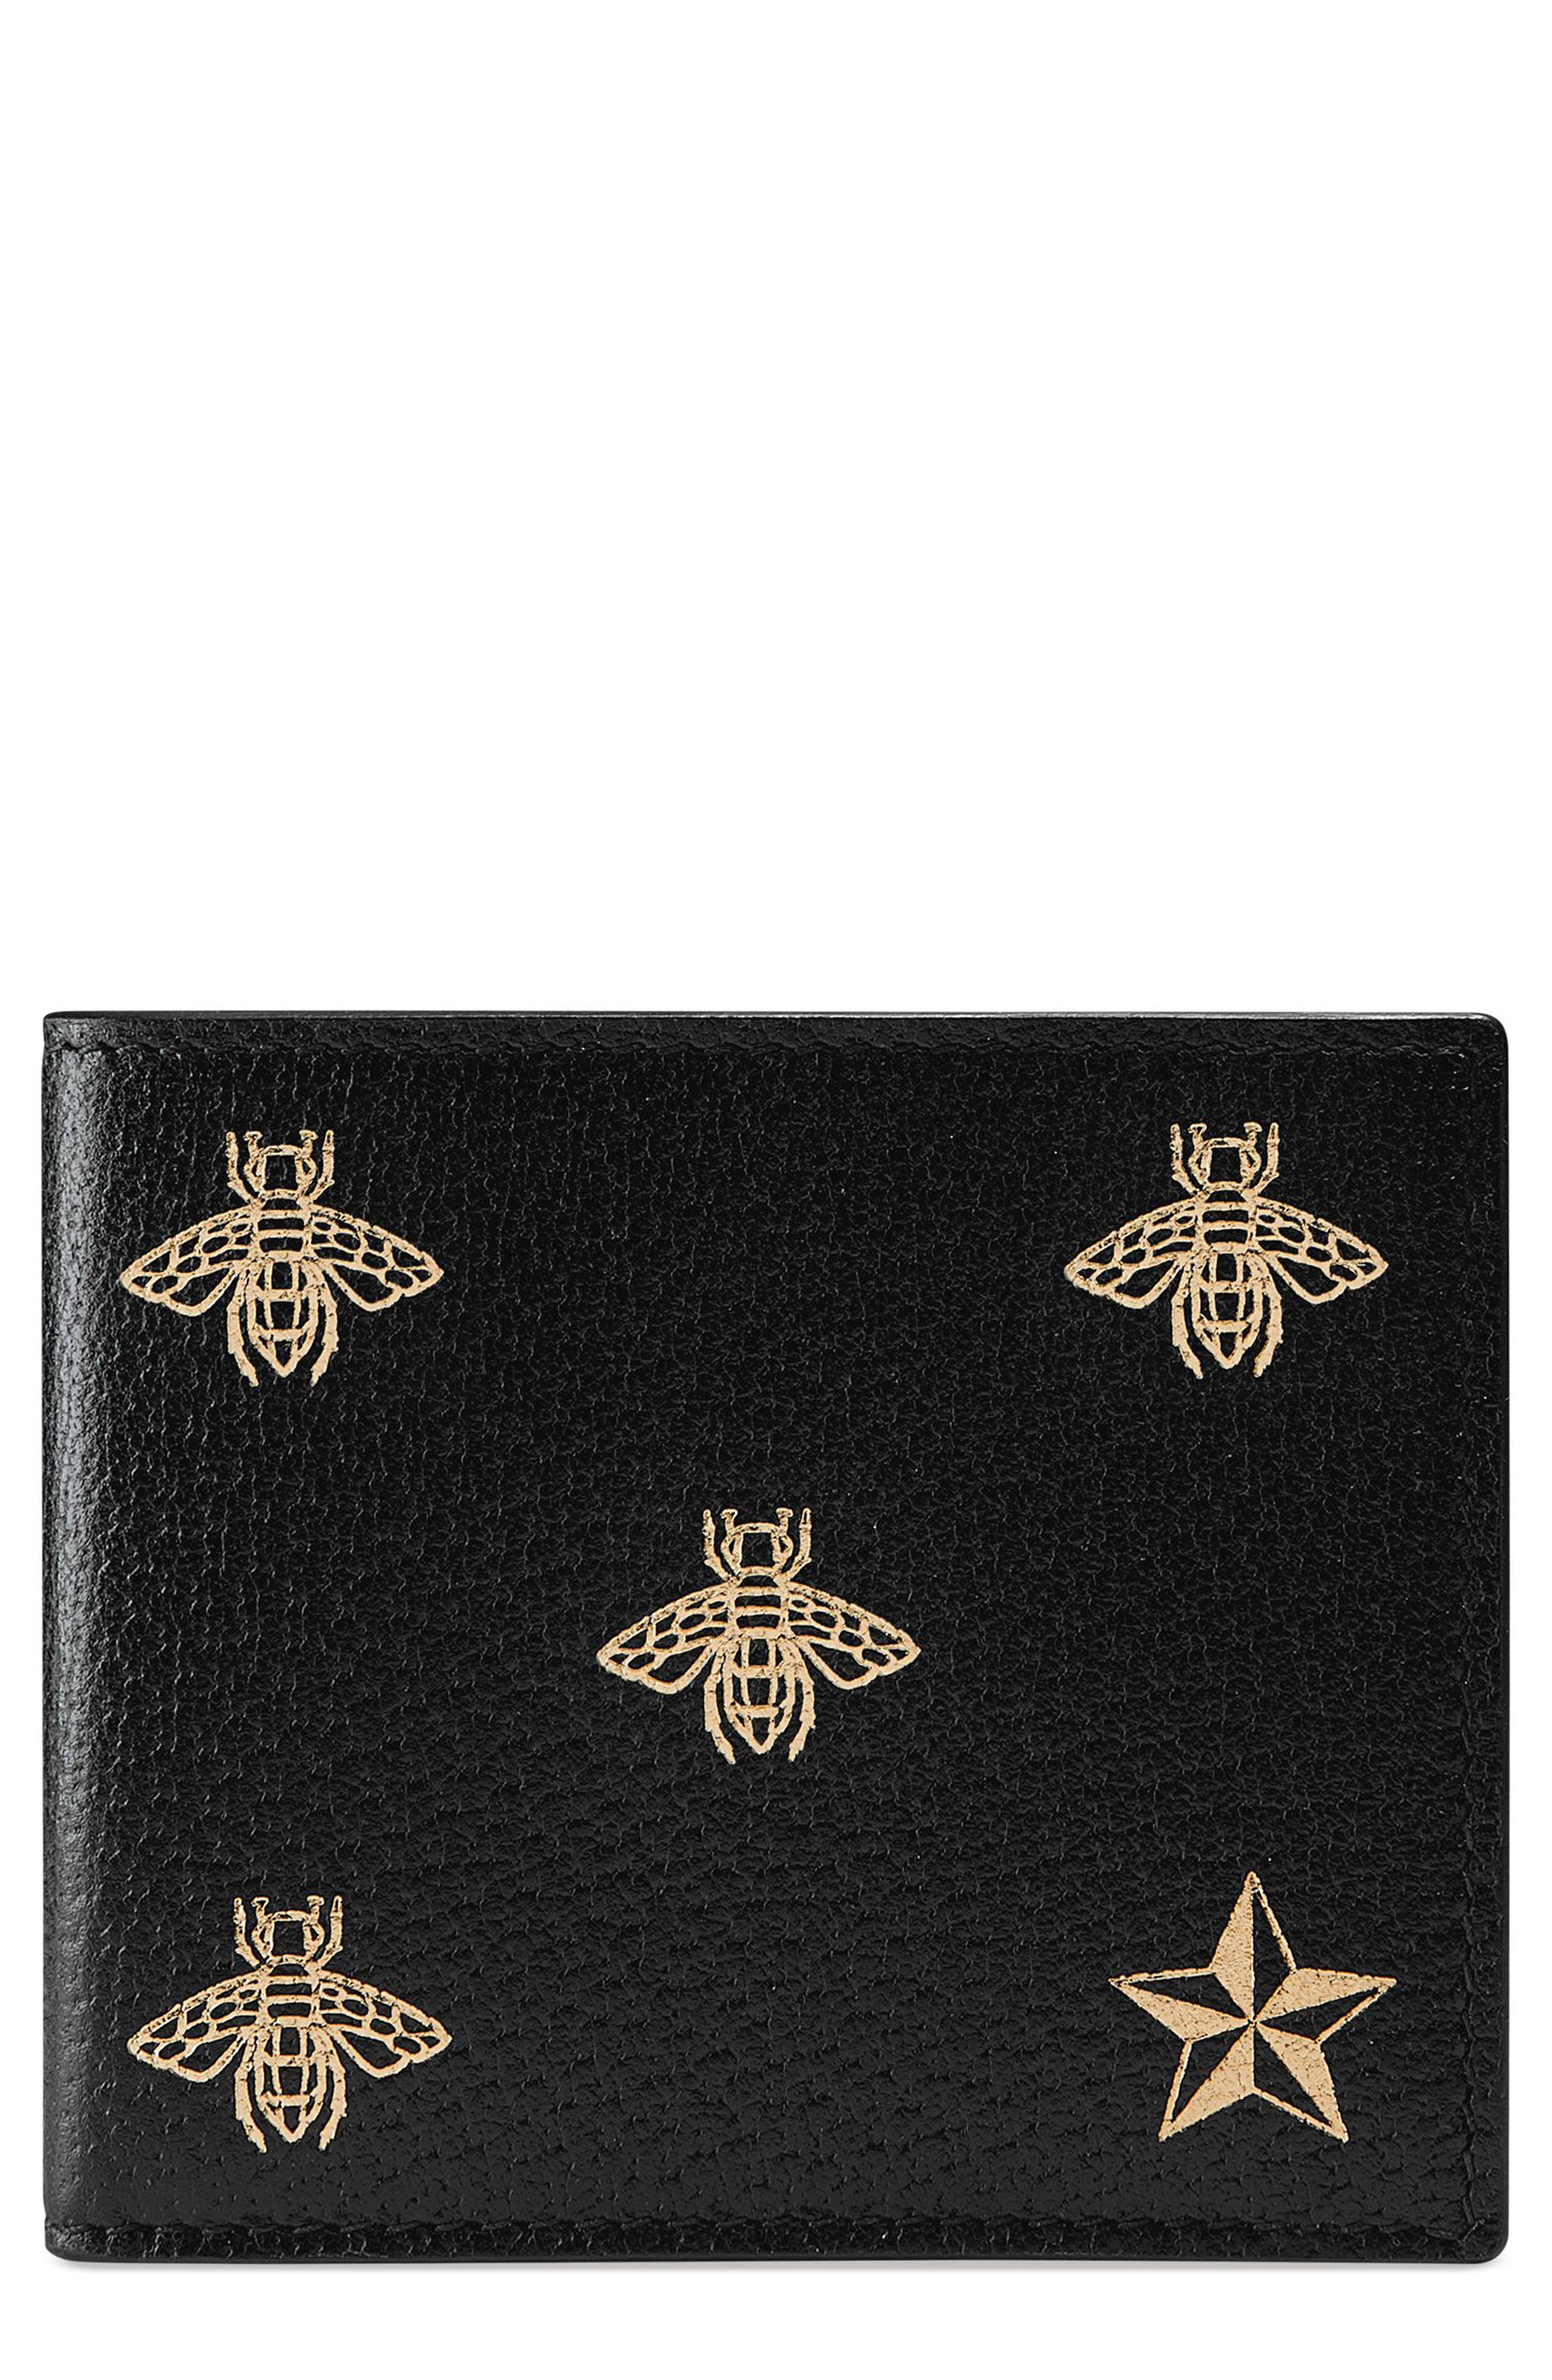 Bee Leather Wallet,                             Main thumbnail 1, color,                             001